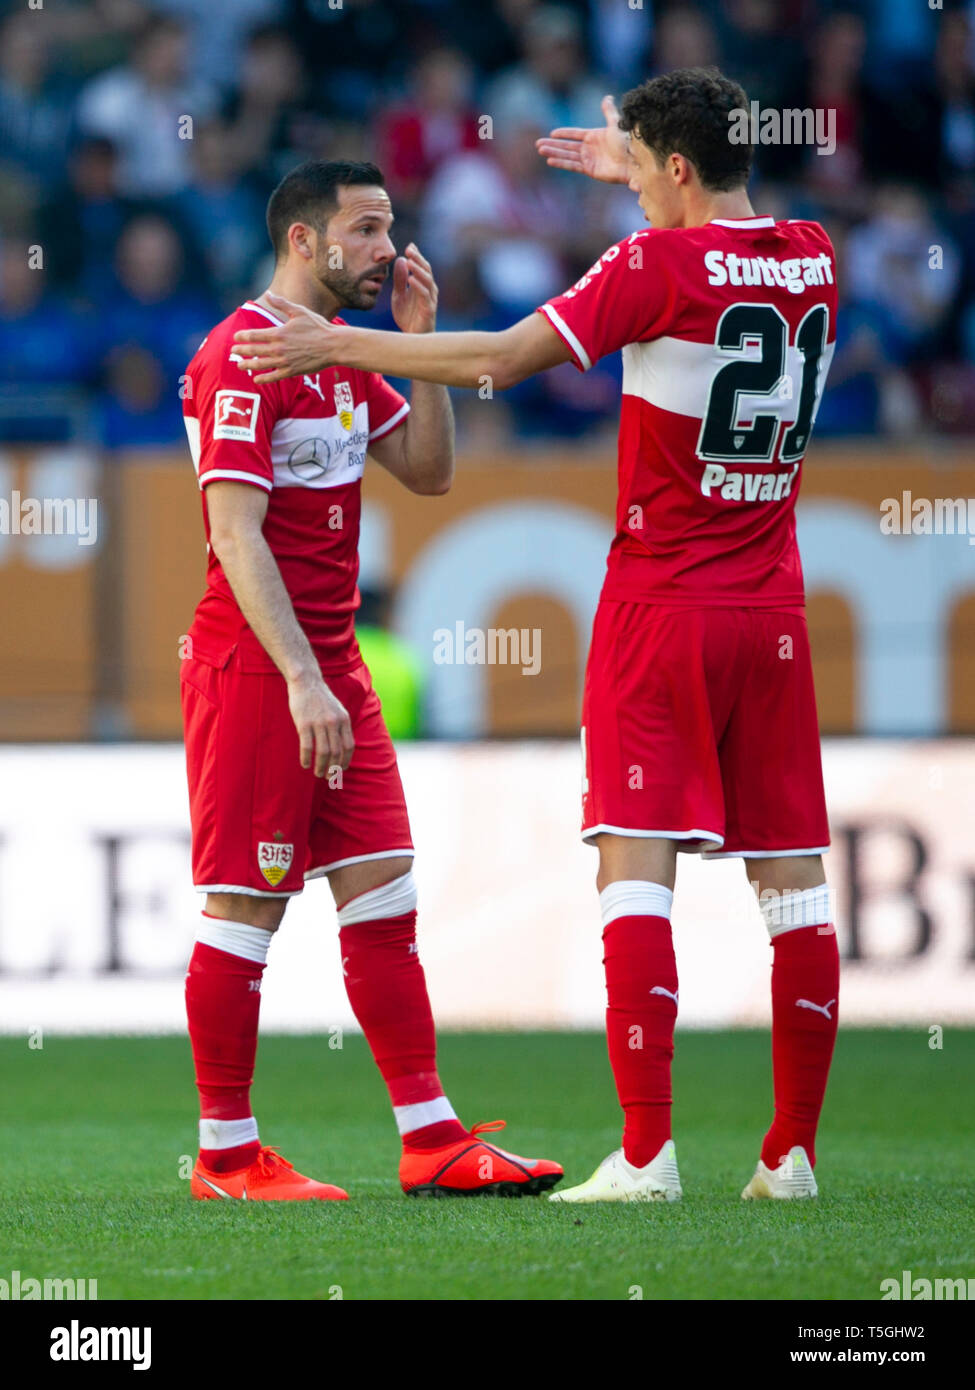 Bewilderment, A¶ Gonzalo CASTRO (# 8, S) and Benjamin PAVARD (# 21, S). Soccer, FC Augsburg (A) - VfB Stuttgart (S) 6: 0, Bundesliga, 30.matchday, season 2018/2019, on 20/04/2019 in Augsburg/WWKARENA/Germany. Editorial Note: DFL regulations prohibit any use of photographs as image sequences and/or quasi-video. ¬ | usage worldwide - Stock Image